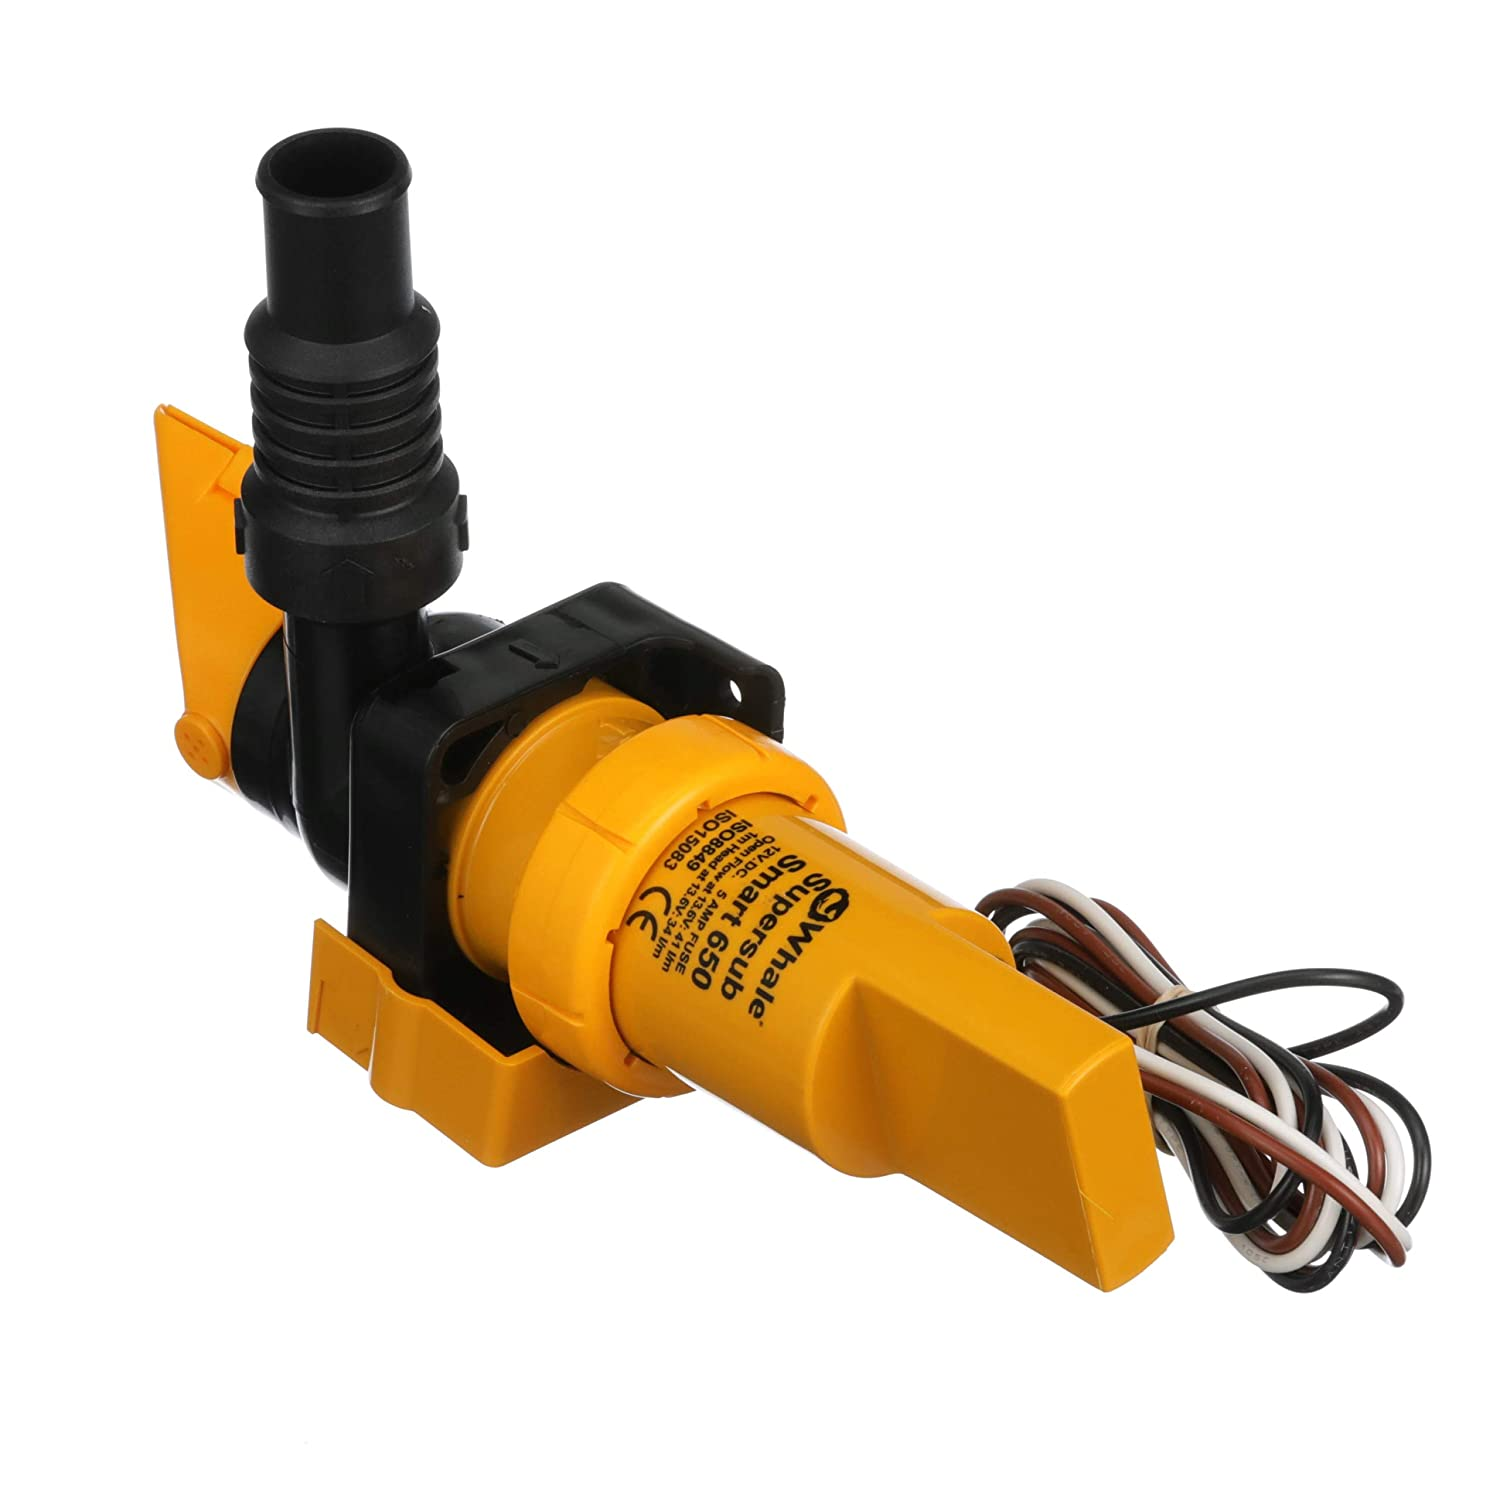 Whale SS5212 Supersub Smart 650 Electric Bilge Pump Open Flow Rate of 650 GPH @ 13.6V DC Suitable for Use with Fresh or Salt Water 12V DC 16 AWG Wire /¾-Inch and 1-Inch Hose Connections 3.4 Amps